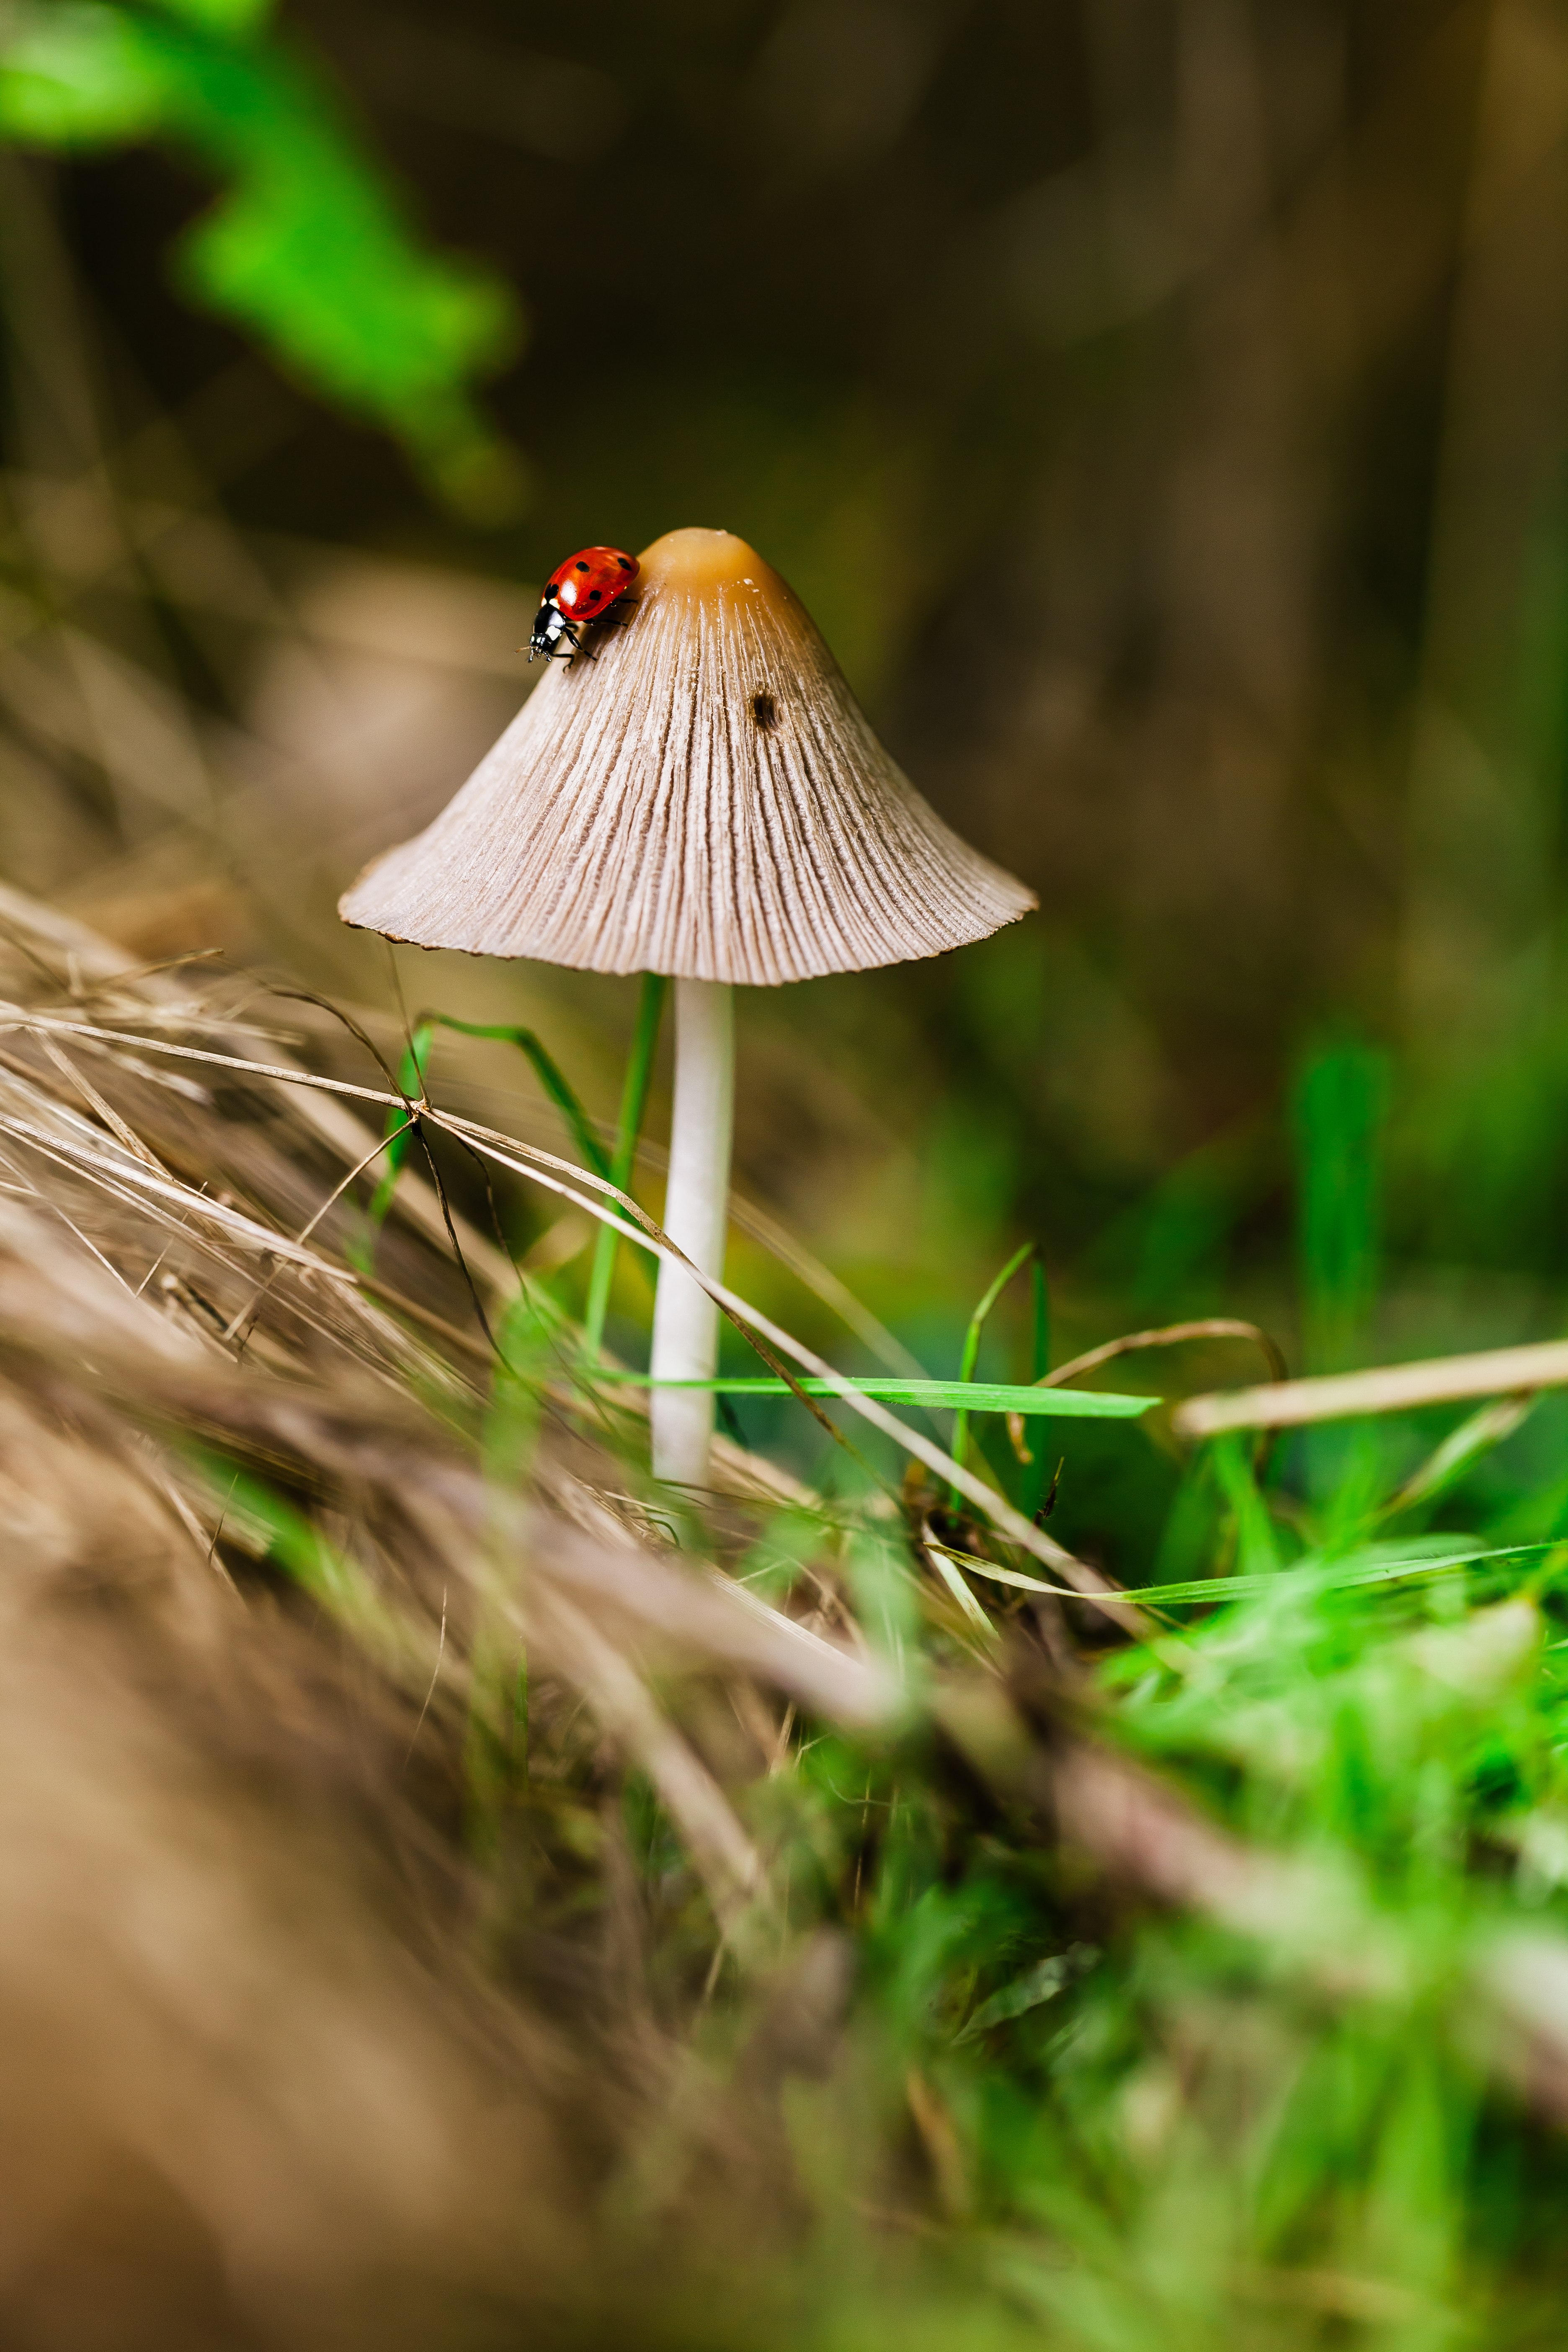 Deep in the woods, you find beauty, 5DII, 5DmarkII, Animal, Bokeh, HQ Photo